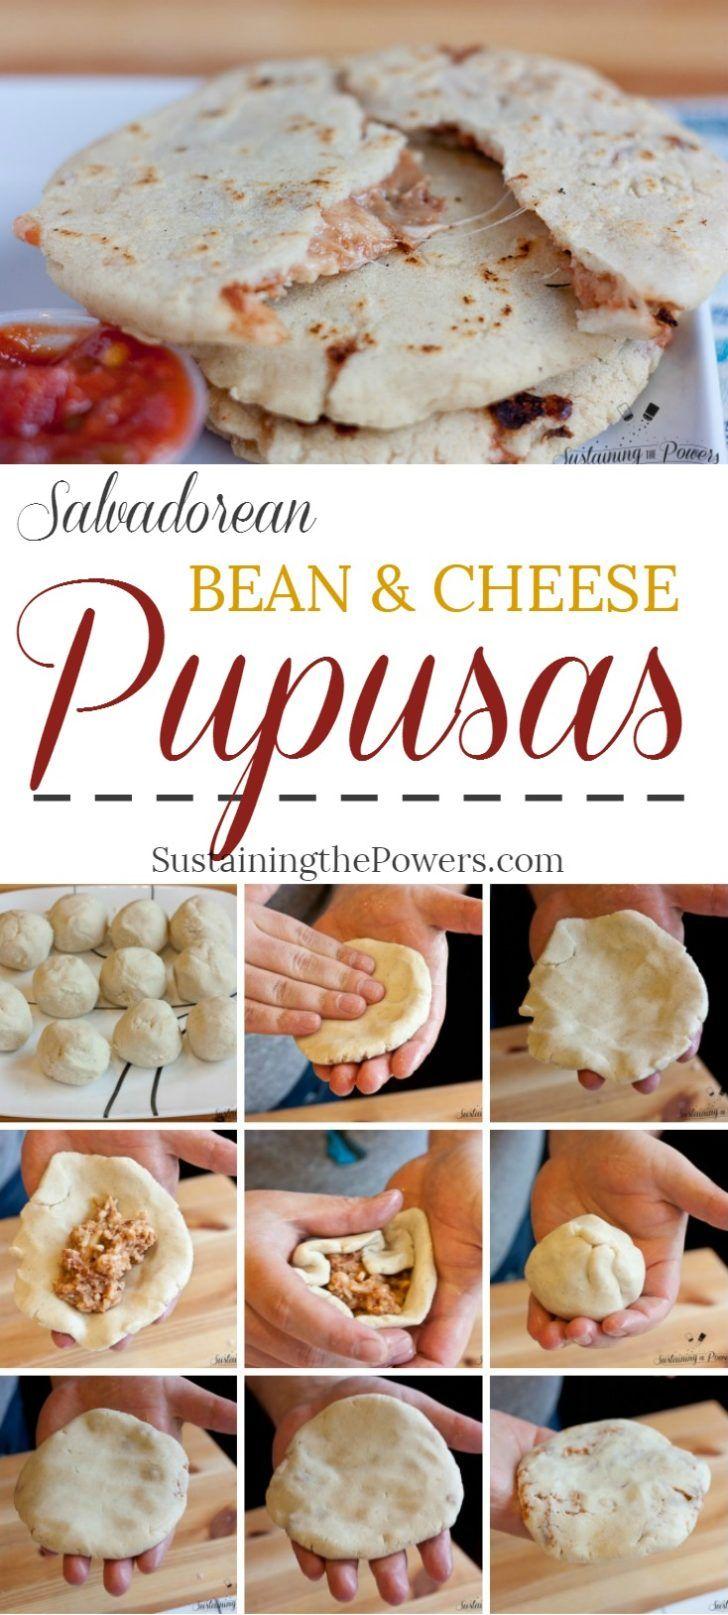 How to Make Salvadorean Bean and Cheese Pupusas |  Pupusas are pillowy corn tortillas stuffed with beans and cheese. They're super cheap, fun and quick to make and naturally gluten-free. Click through to learn how to make them with a recipe + quick video tutorial!